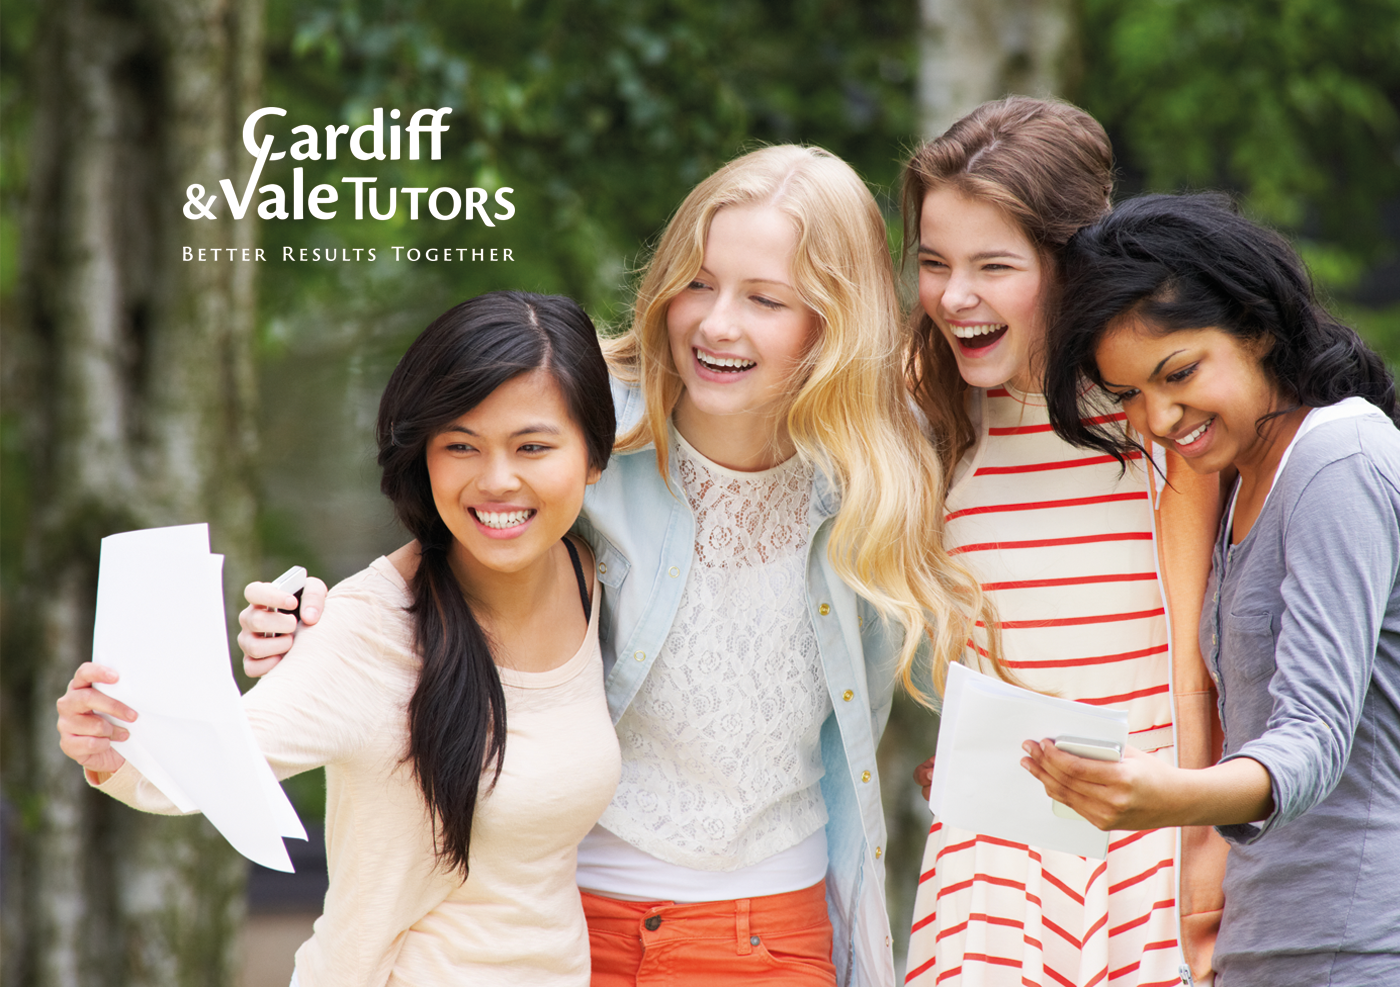 Cardiff&Vale-Behance4.png